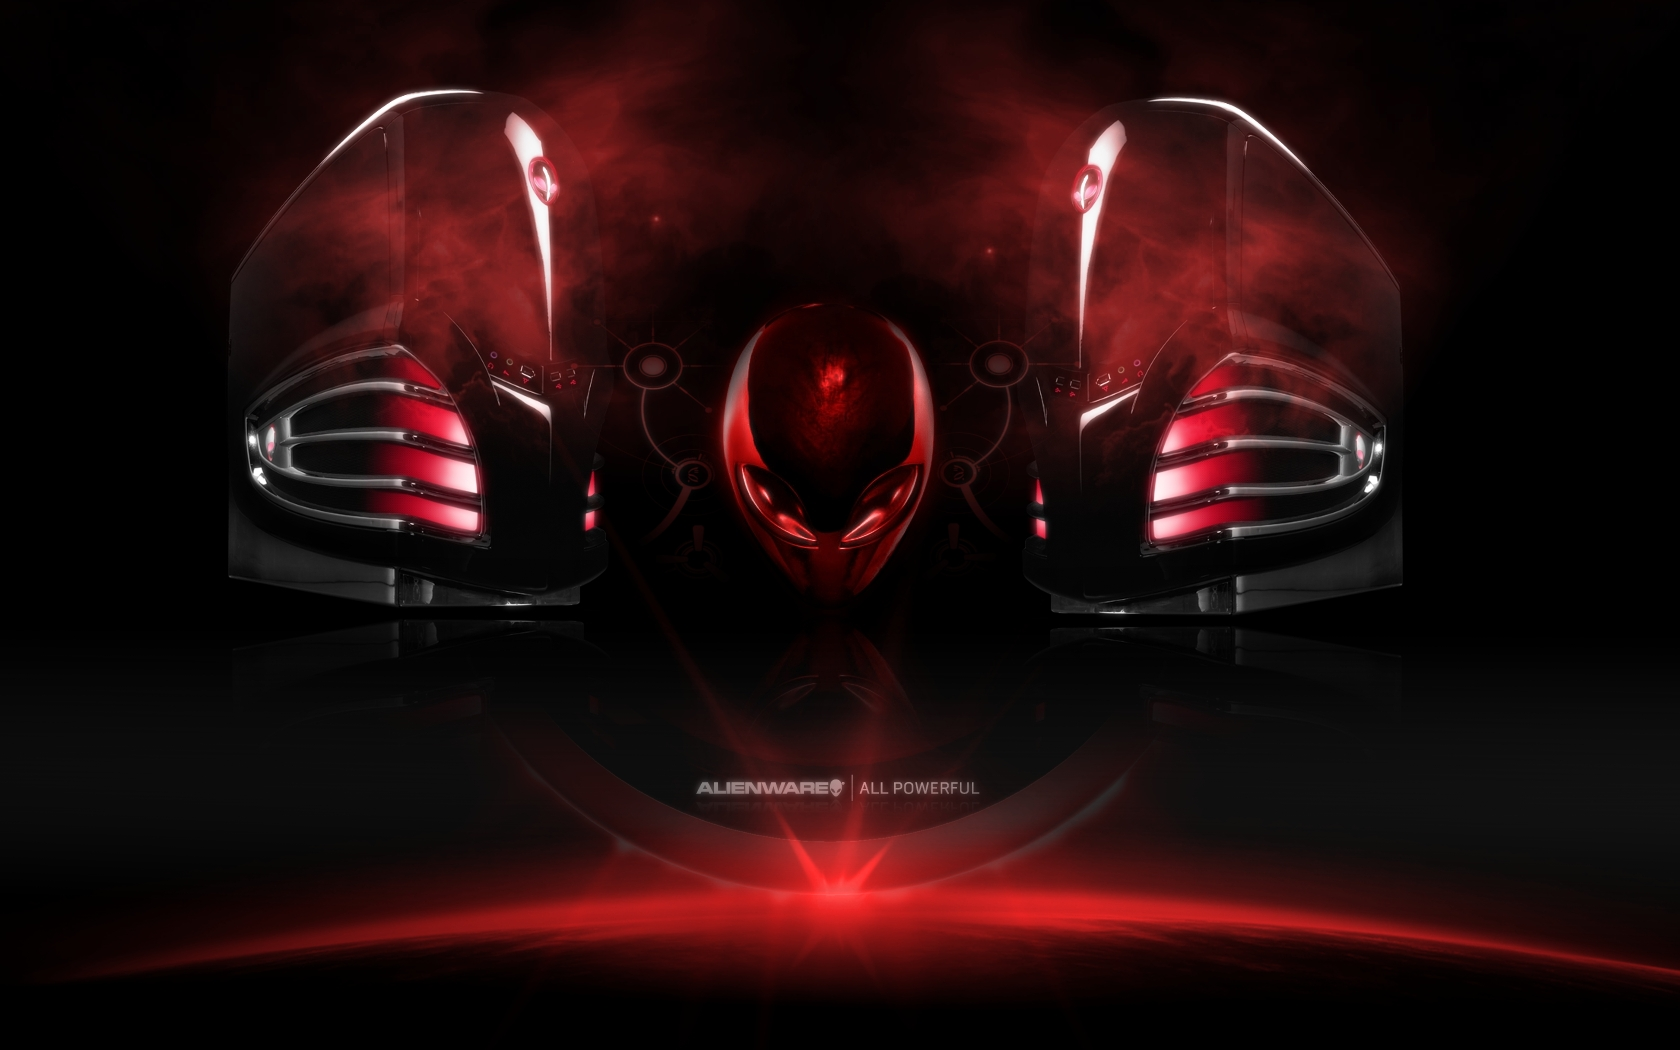 Alienware Wallpapers: Alienware Wallpaper 1080p ~ celwall com